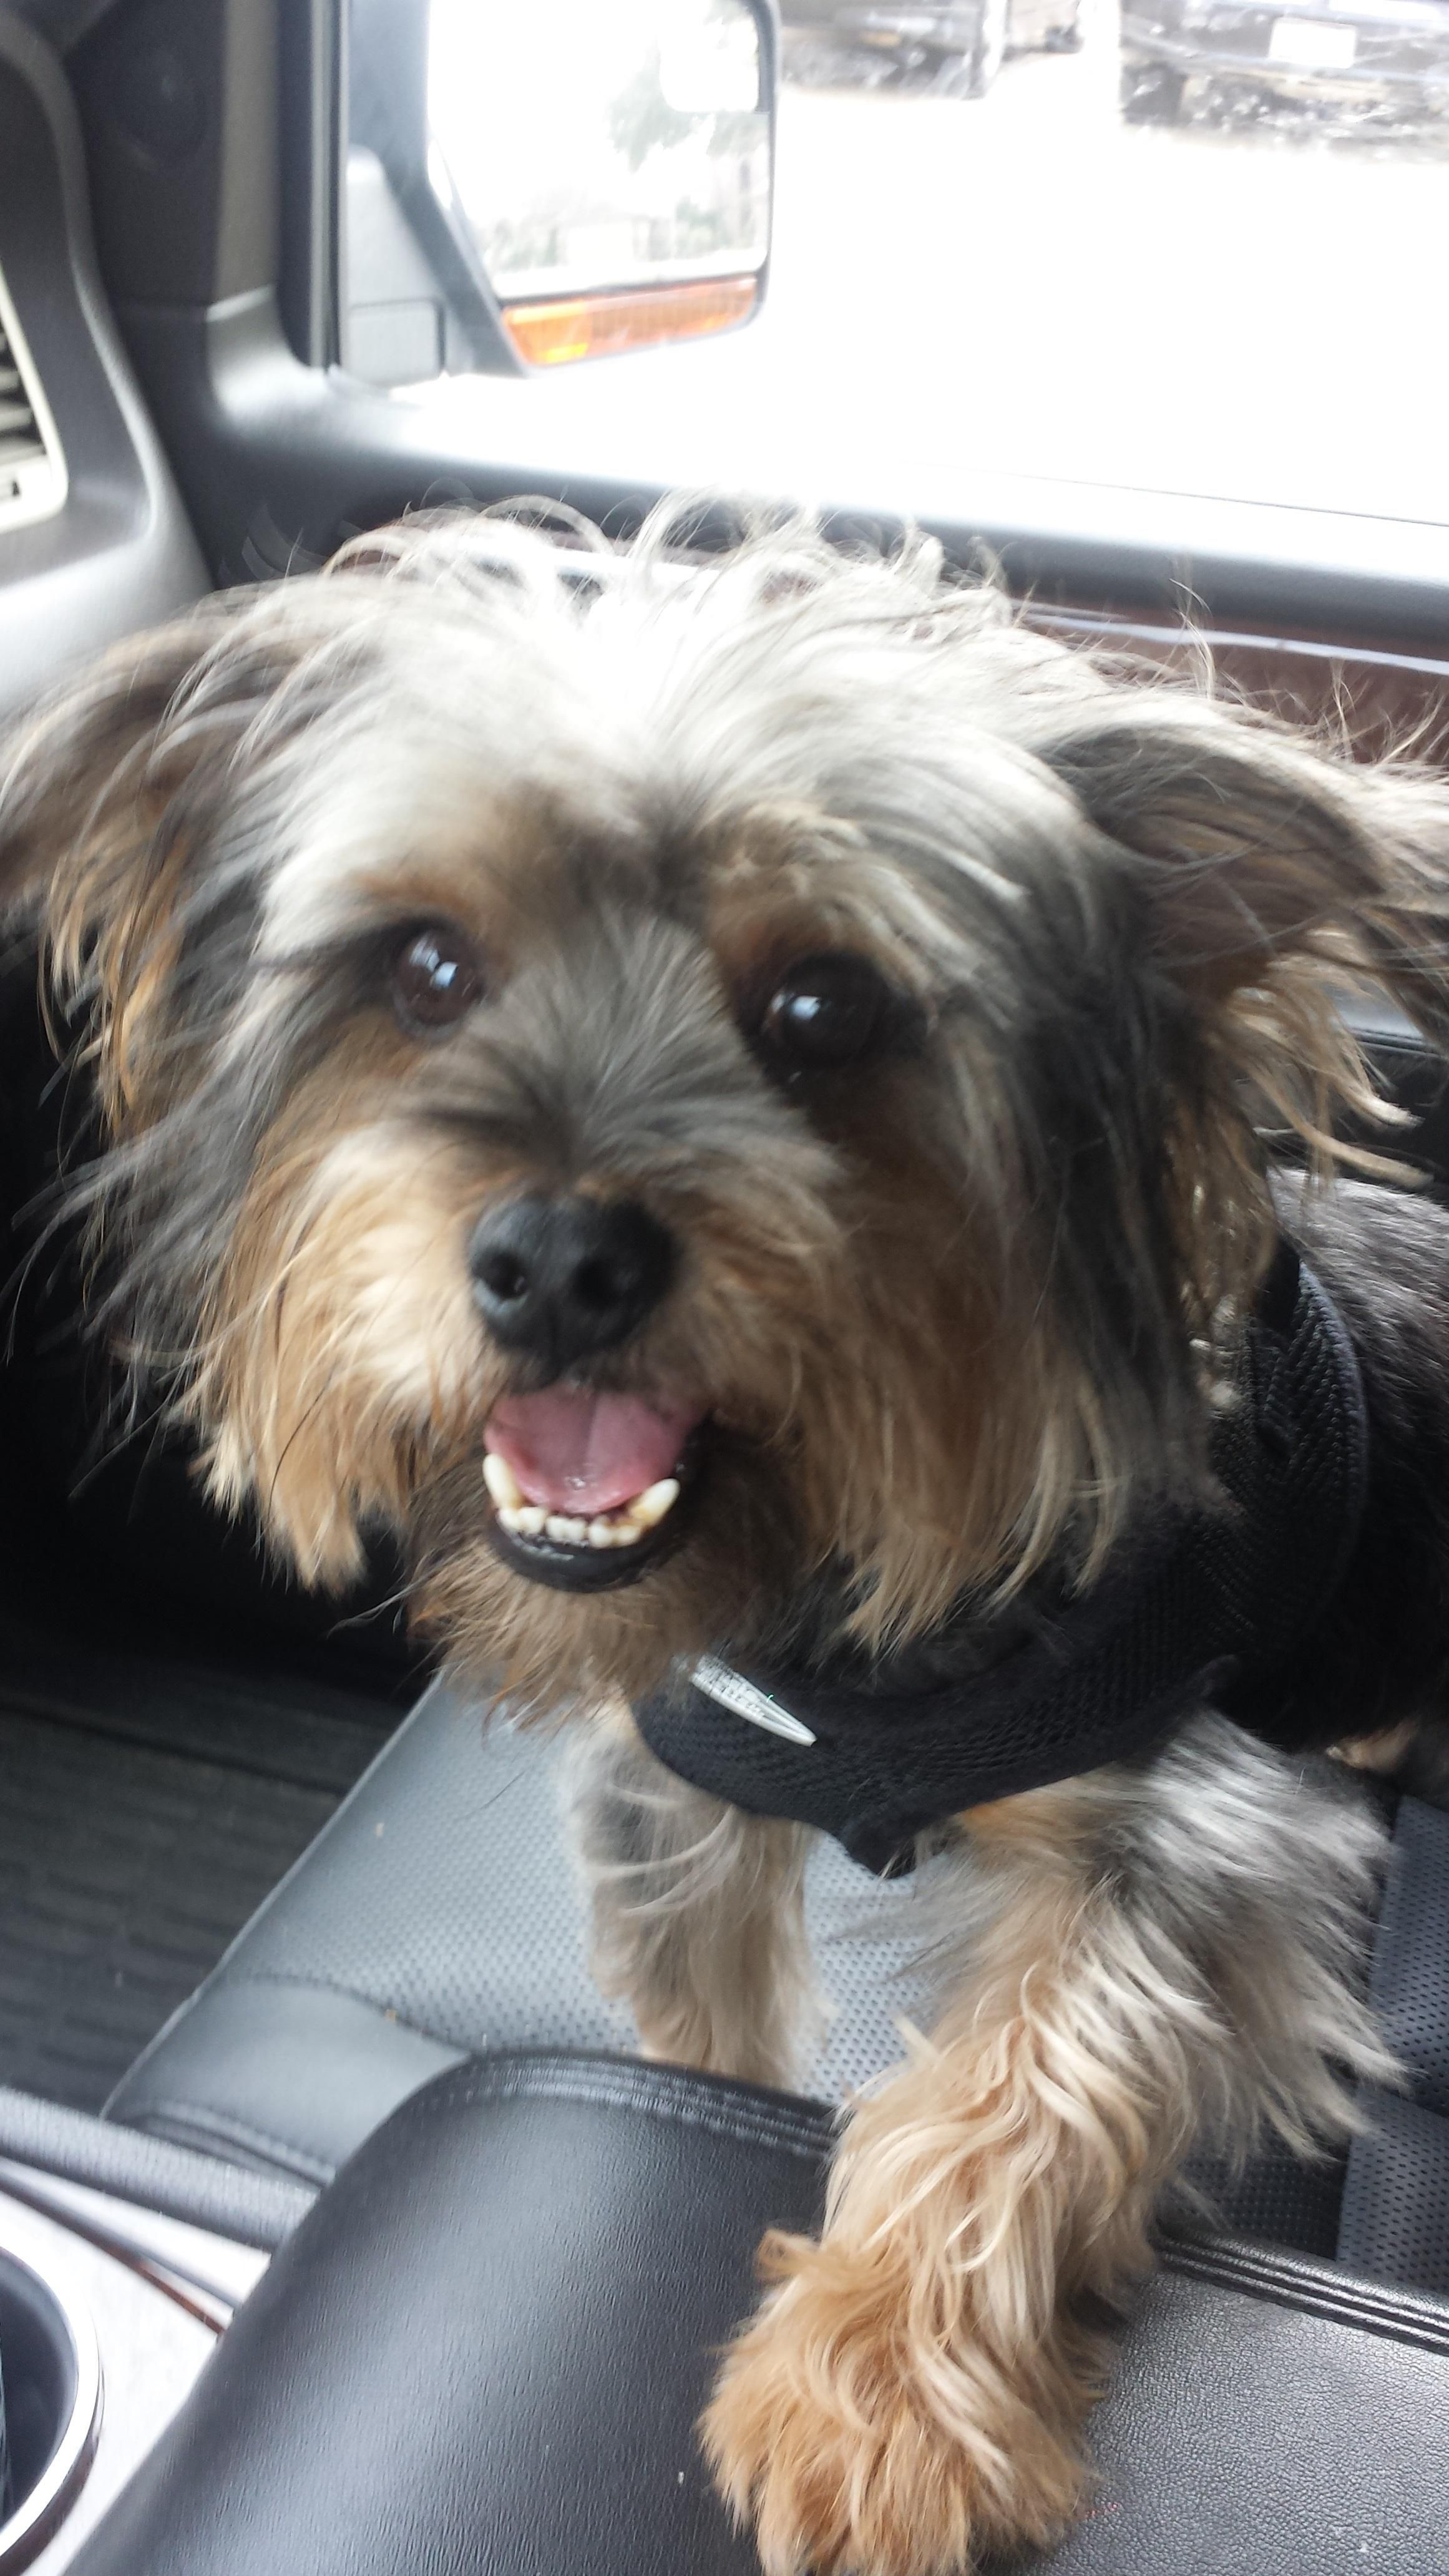 Angus Is An Adoptable Yorkshire Terrier Yorkie Searching For A Forever Family Near League City Tx Use Petfinder To F Yorkie Terrier Yorkshire Terrier Terrier